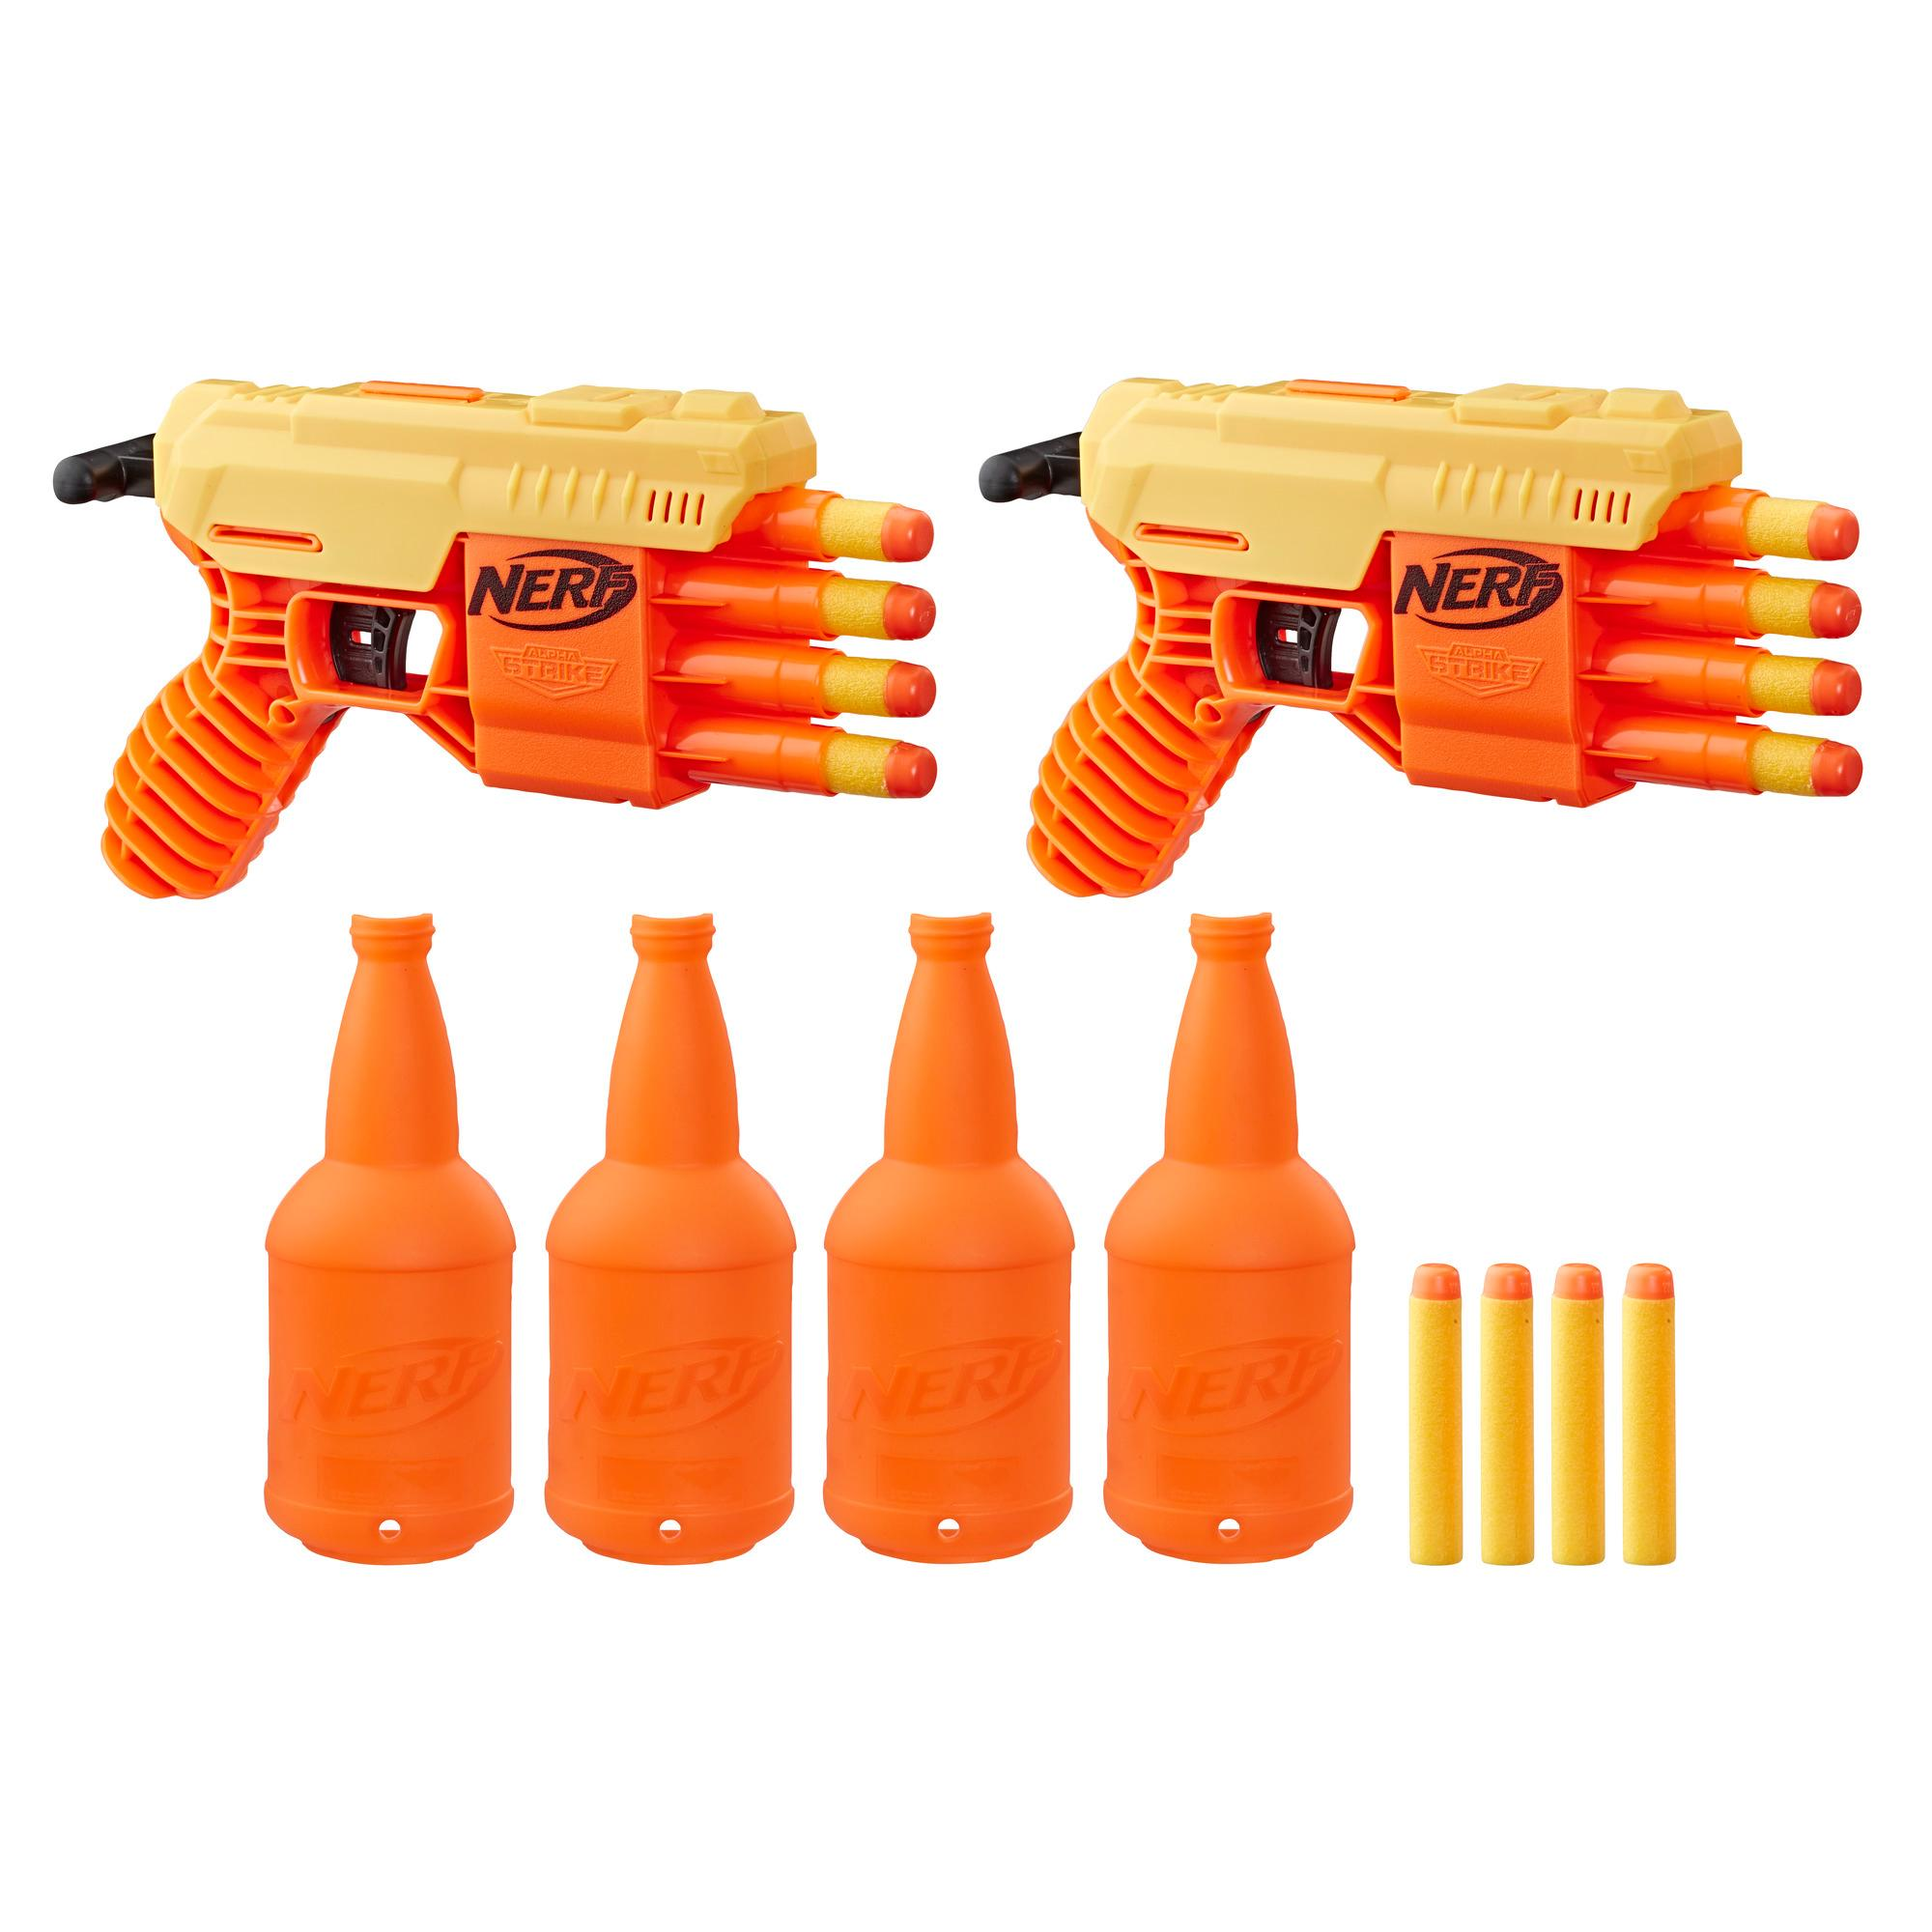 Fang QS-4 Dual Targeting Set -- 18-Piece Nerf Alpha Strike Set